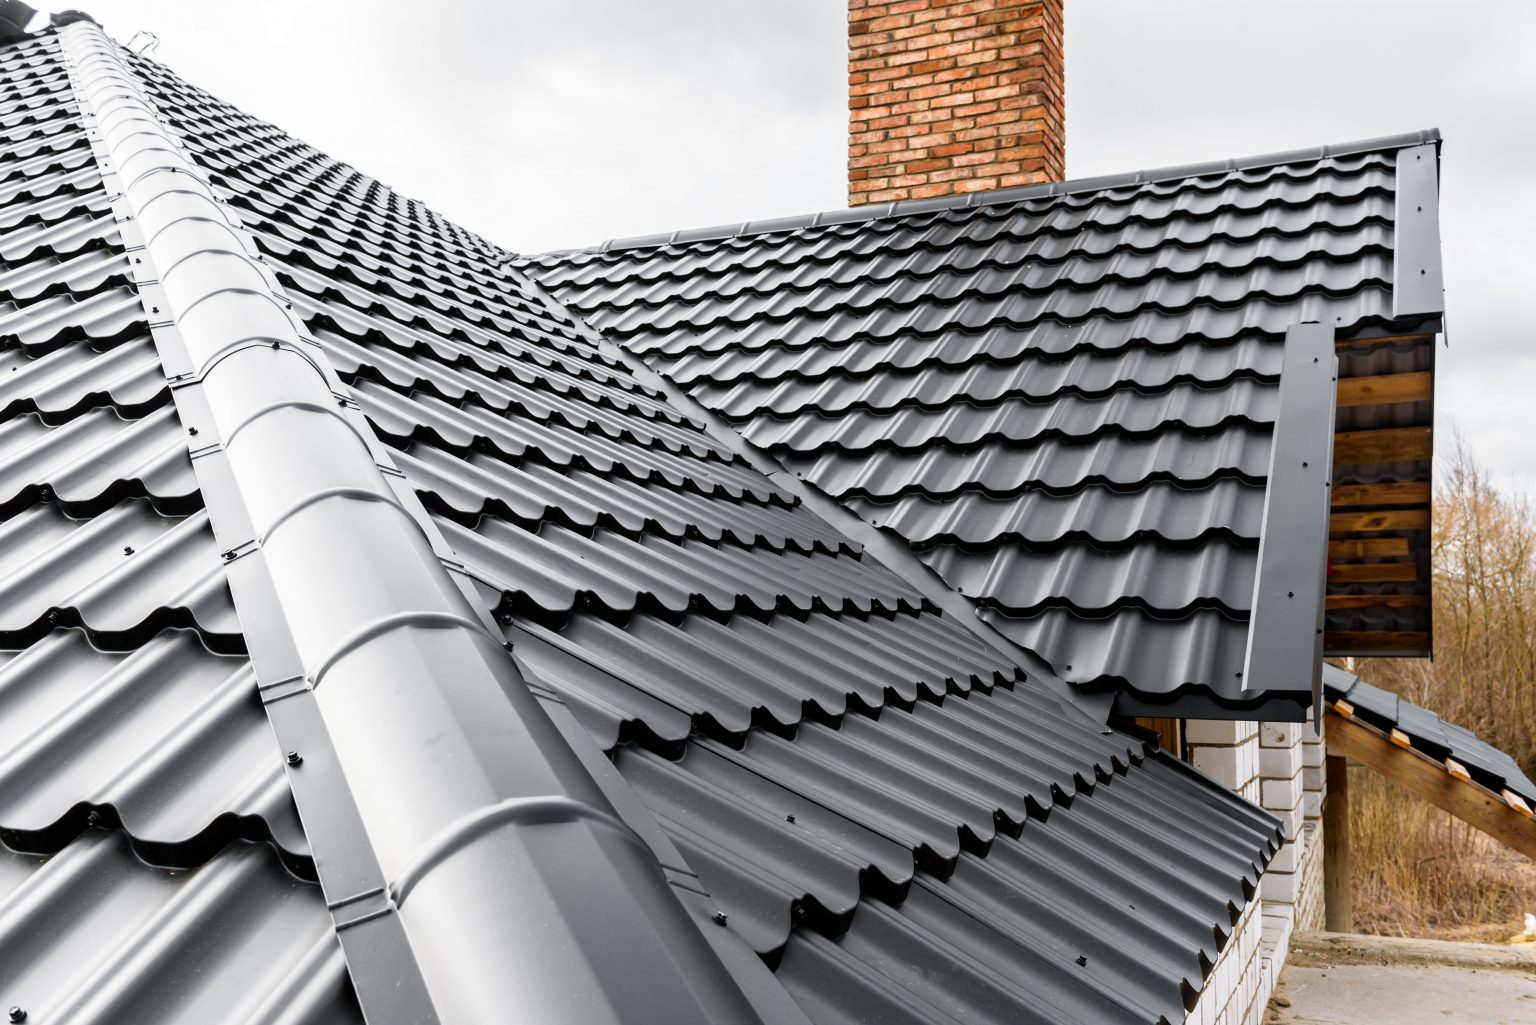 Construction of the roof of the house. Metal tiles.